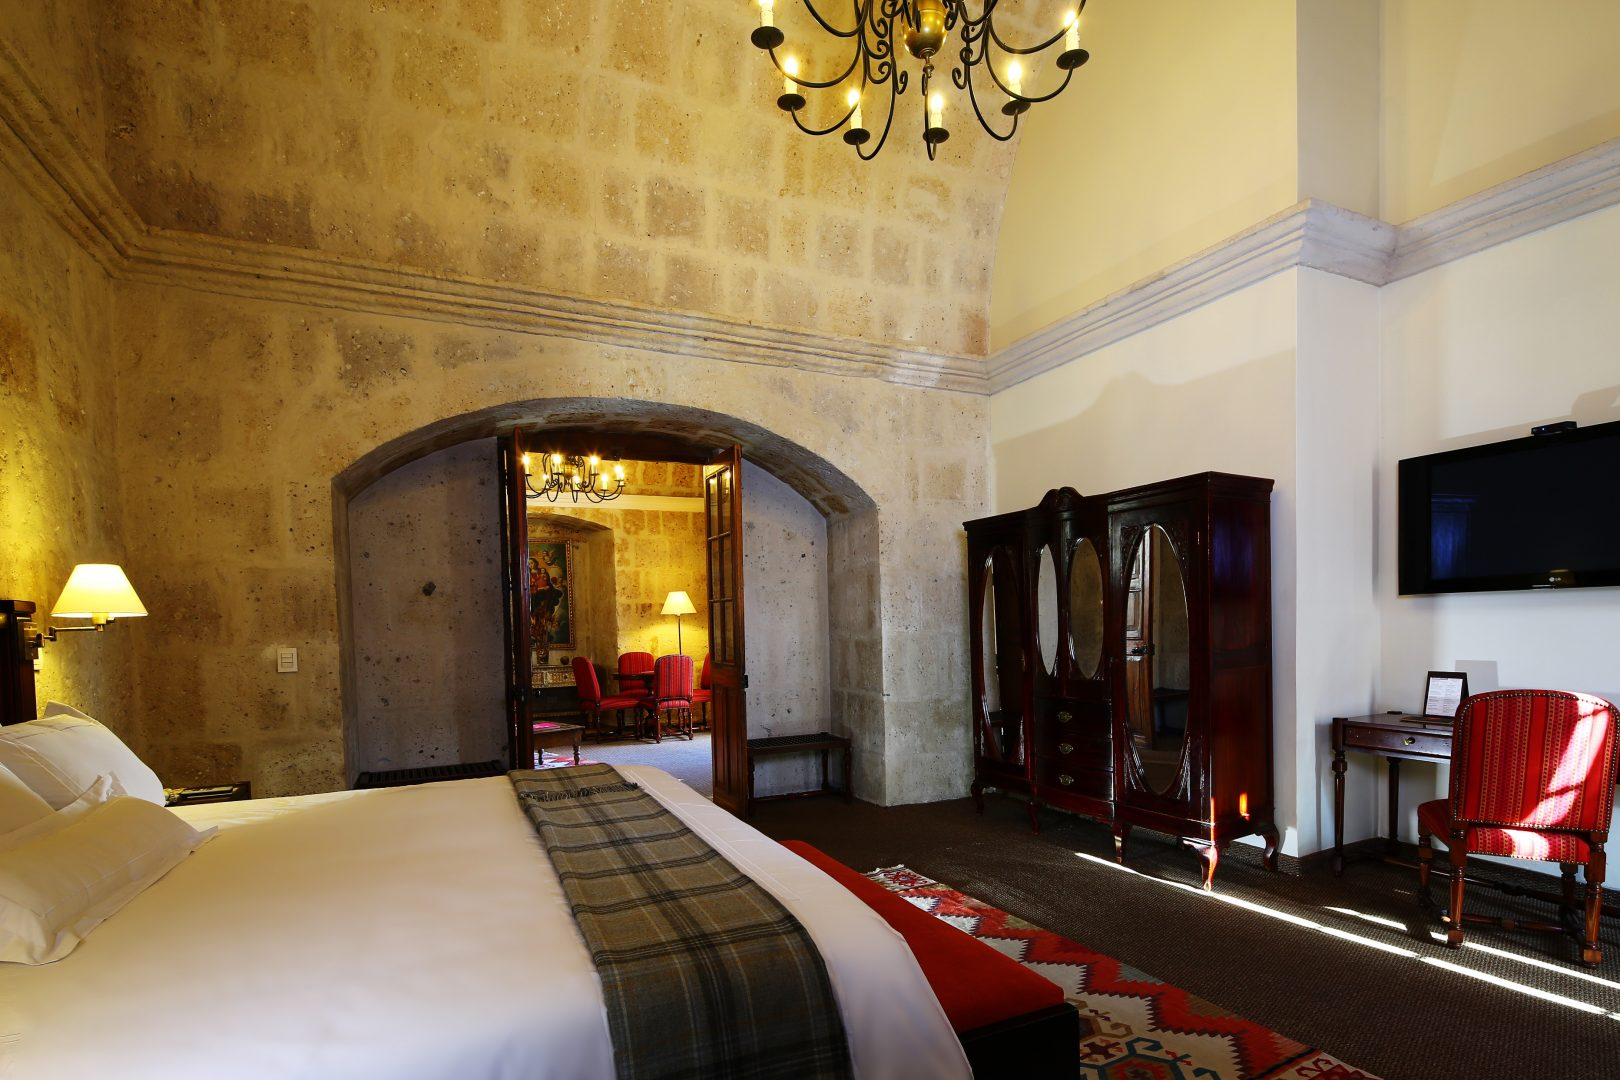 Casa andina private collection arequipa vaya adventures for Hotel casa andina classic arequipa